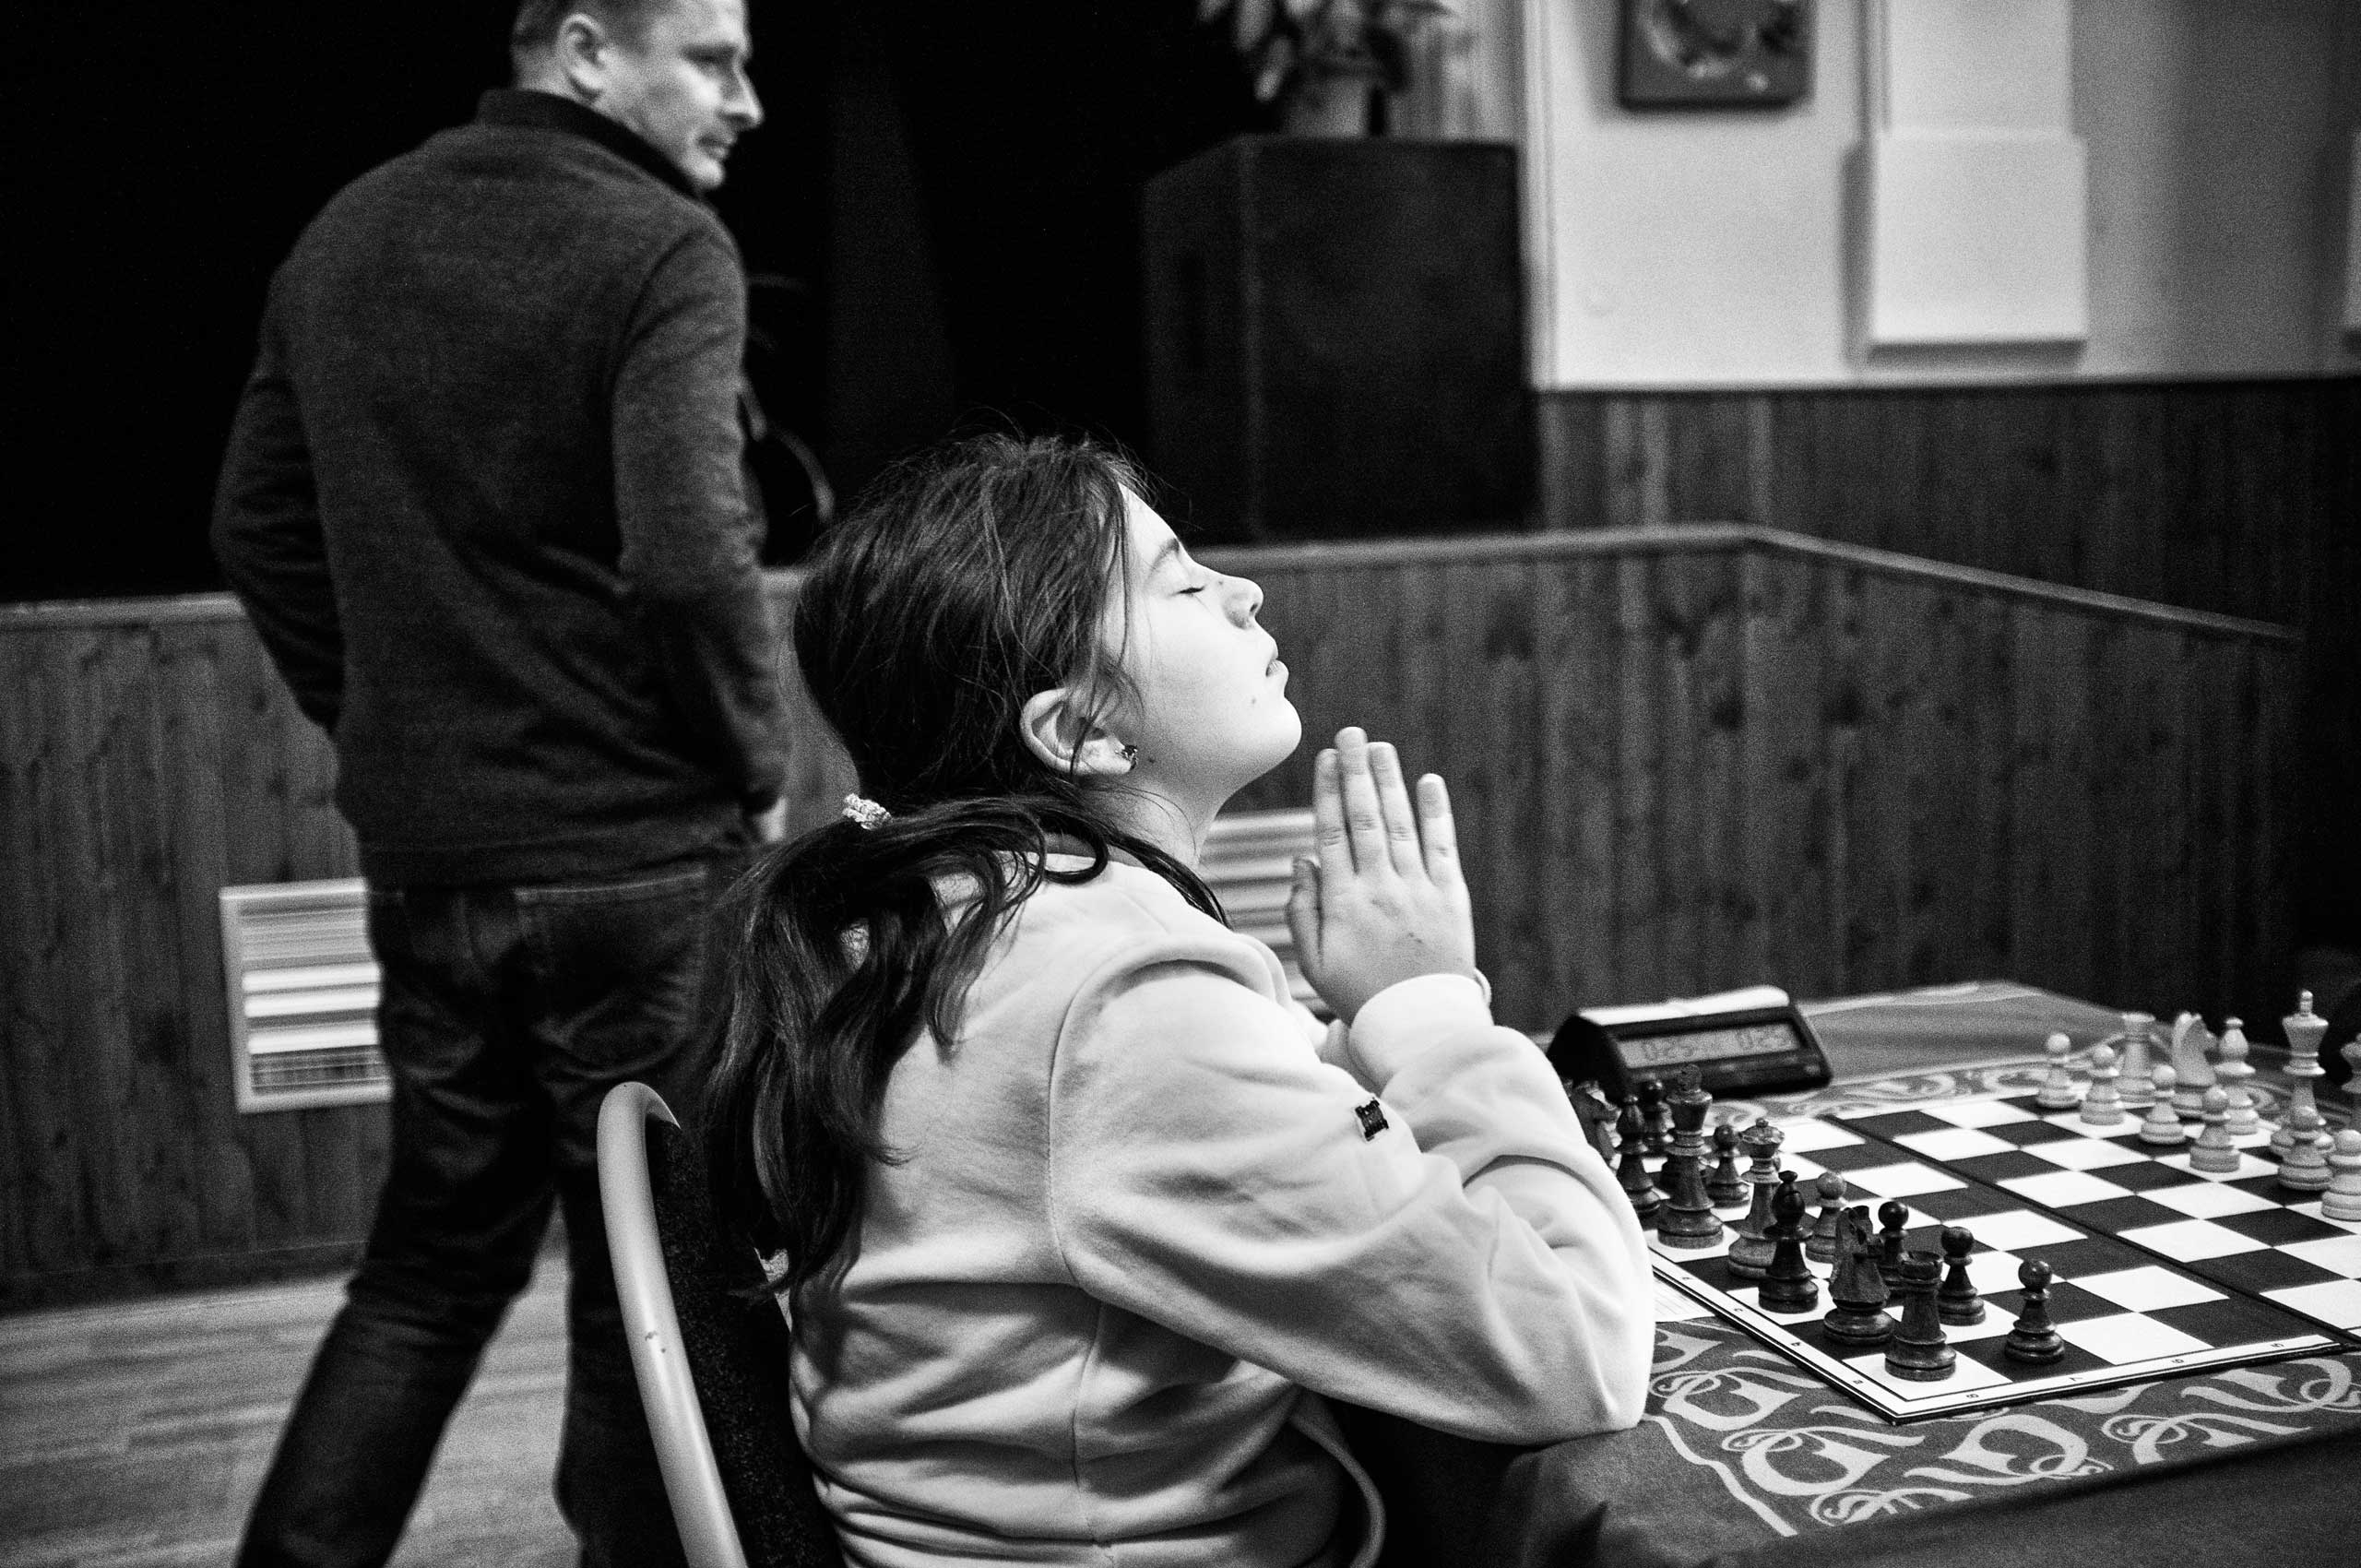 The chess player concentrates just a few moments before the start of the next round of a tournament.